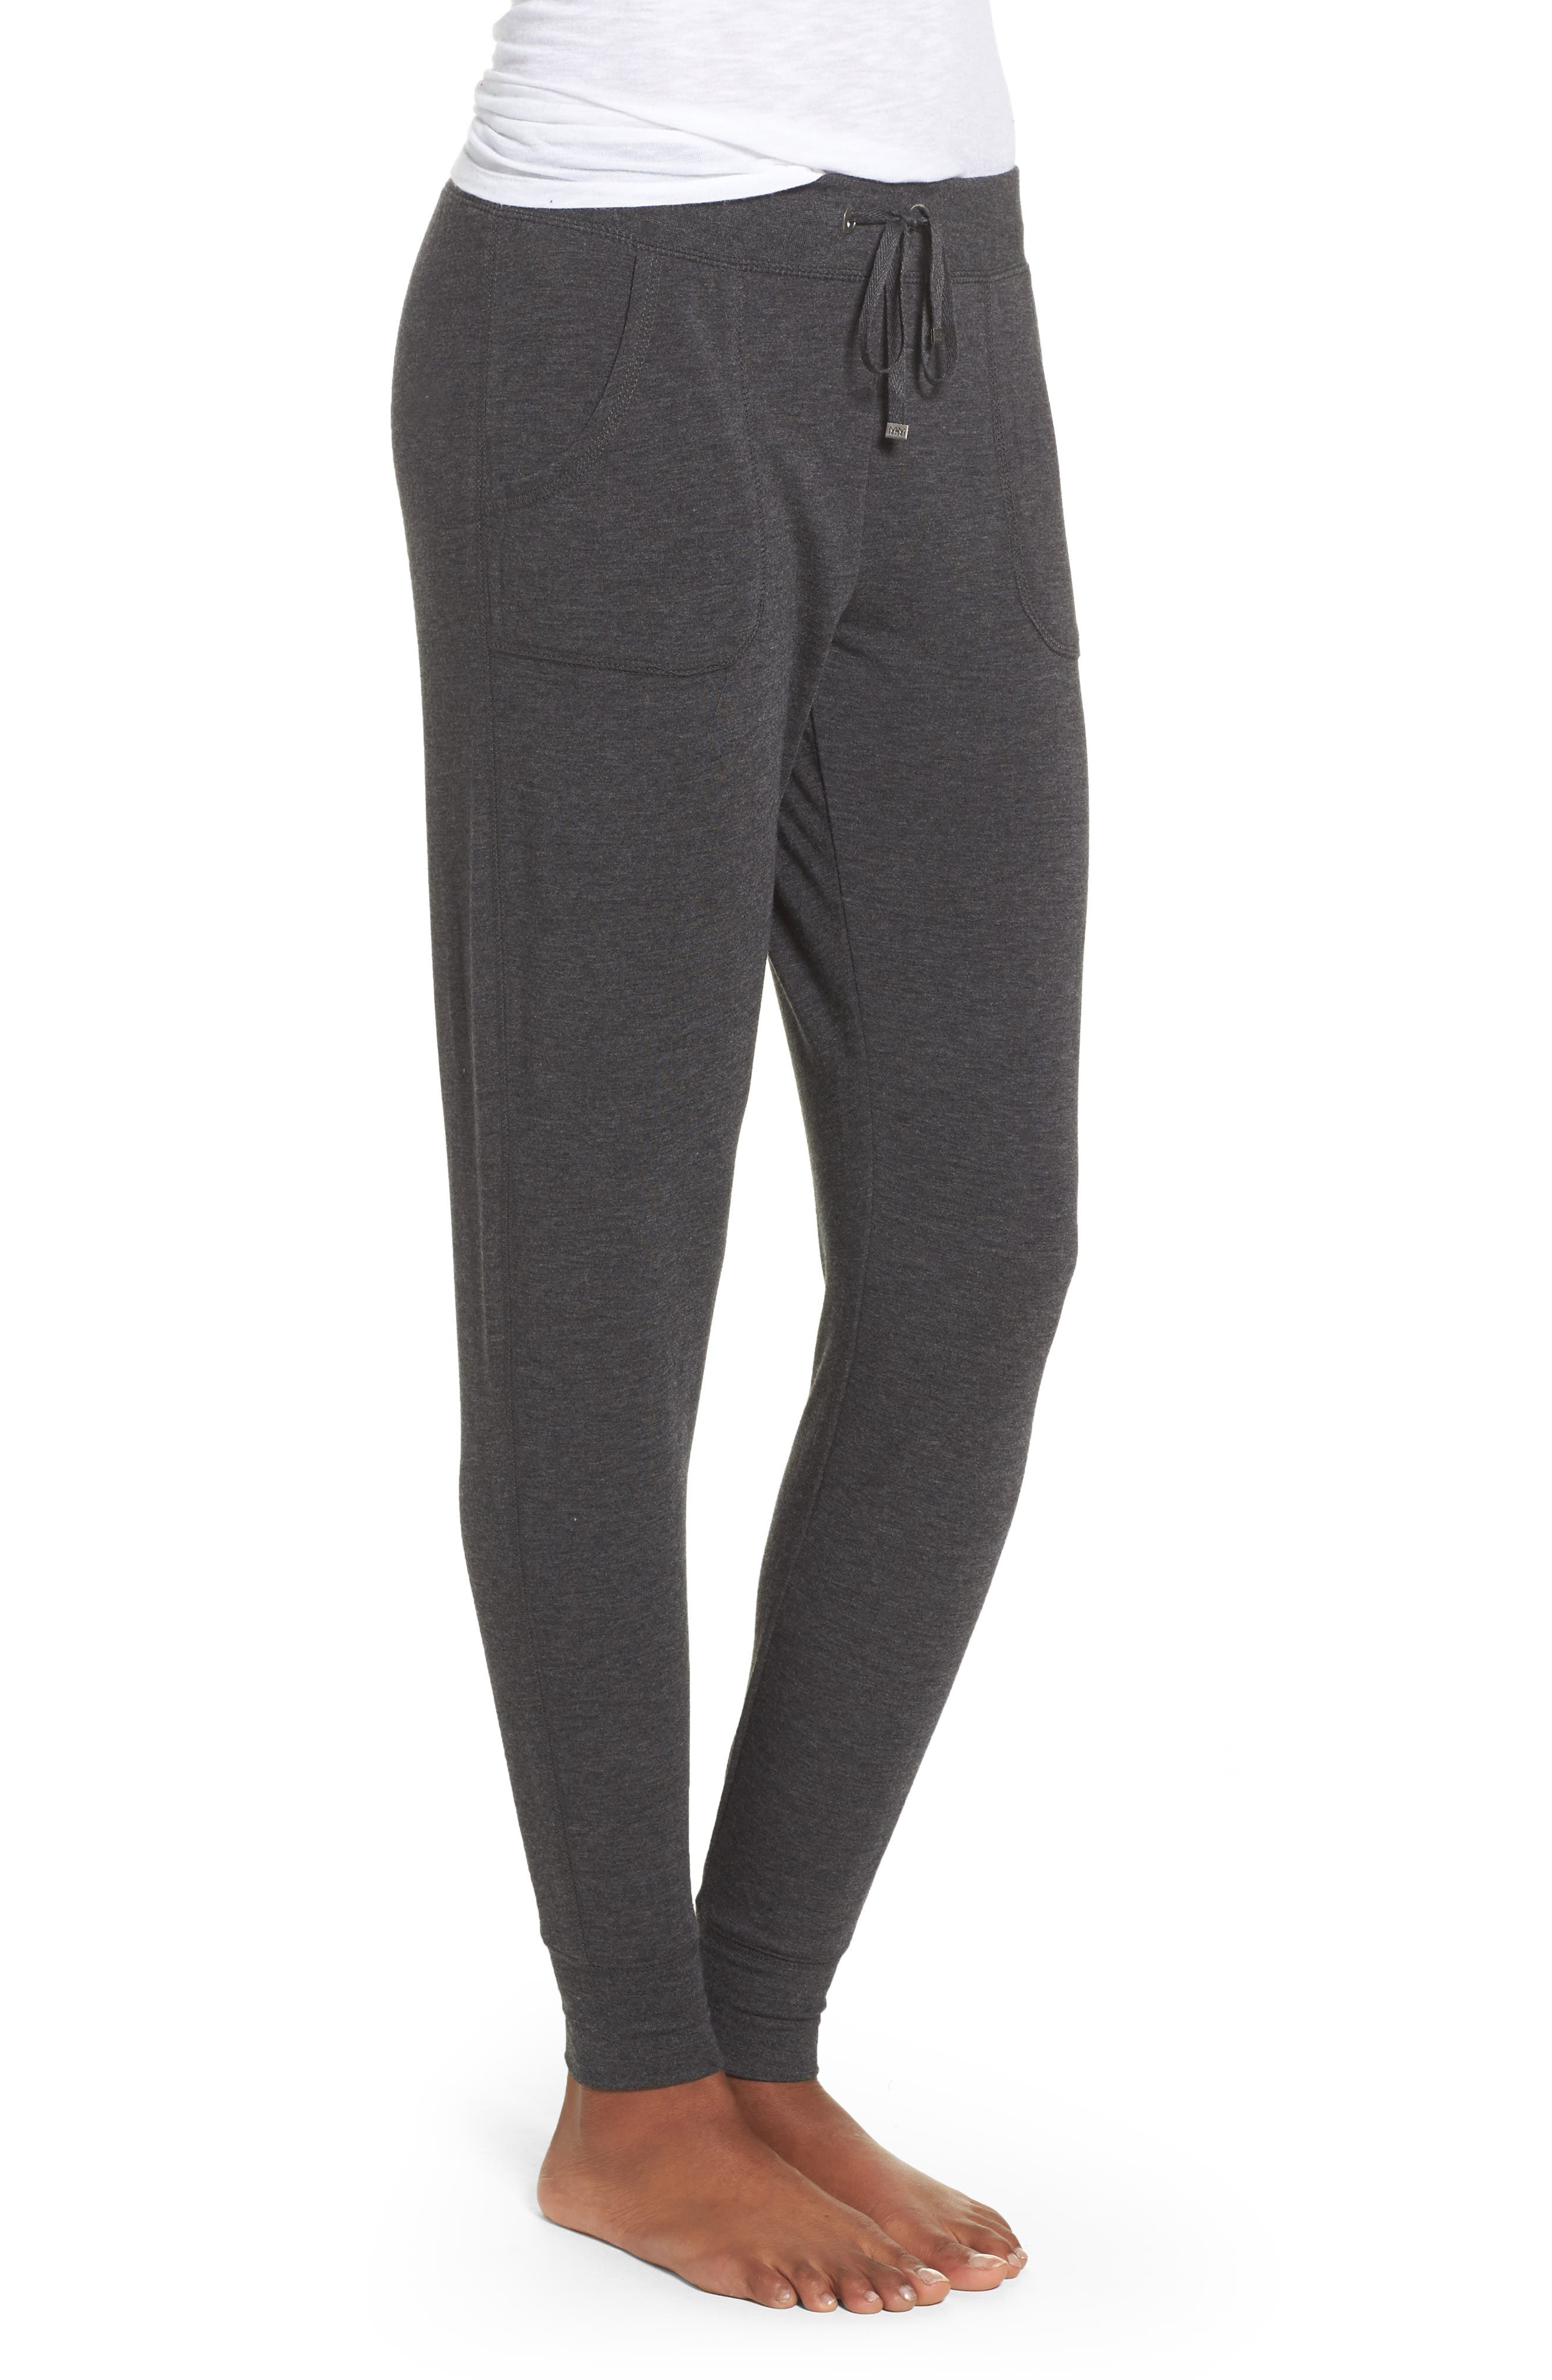 All About It Lounge Pants,                             Alternate thumbnail 3, color,                             030